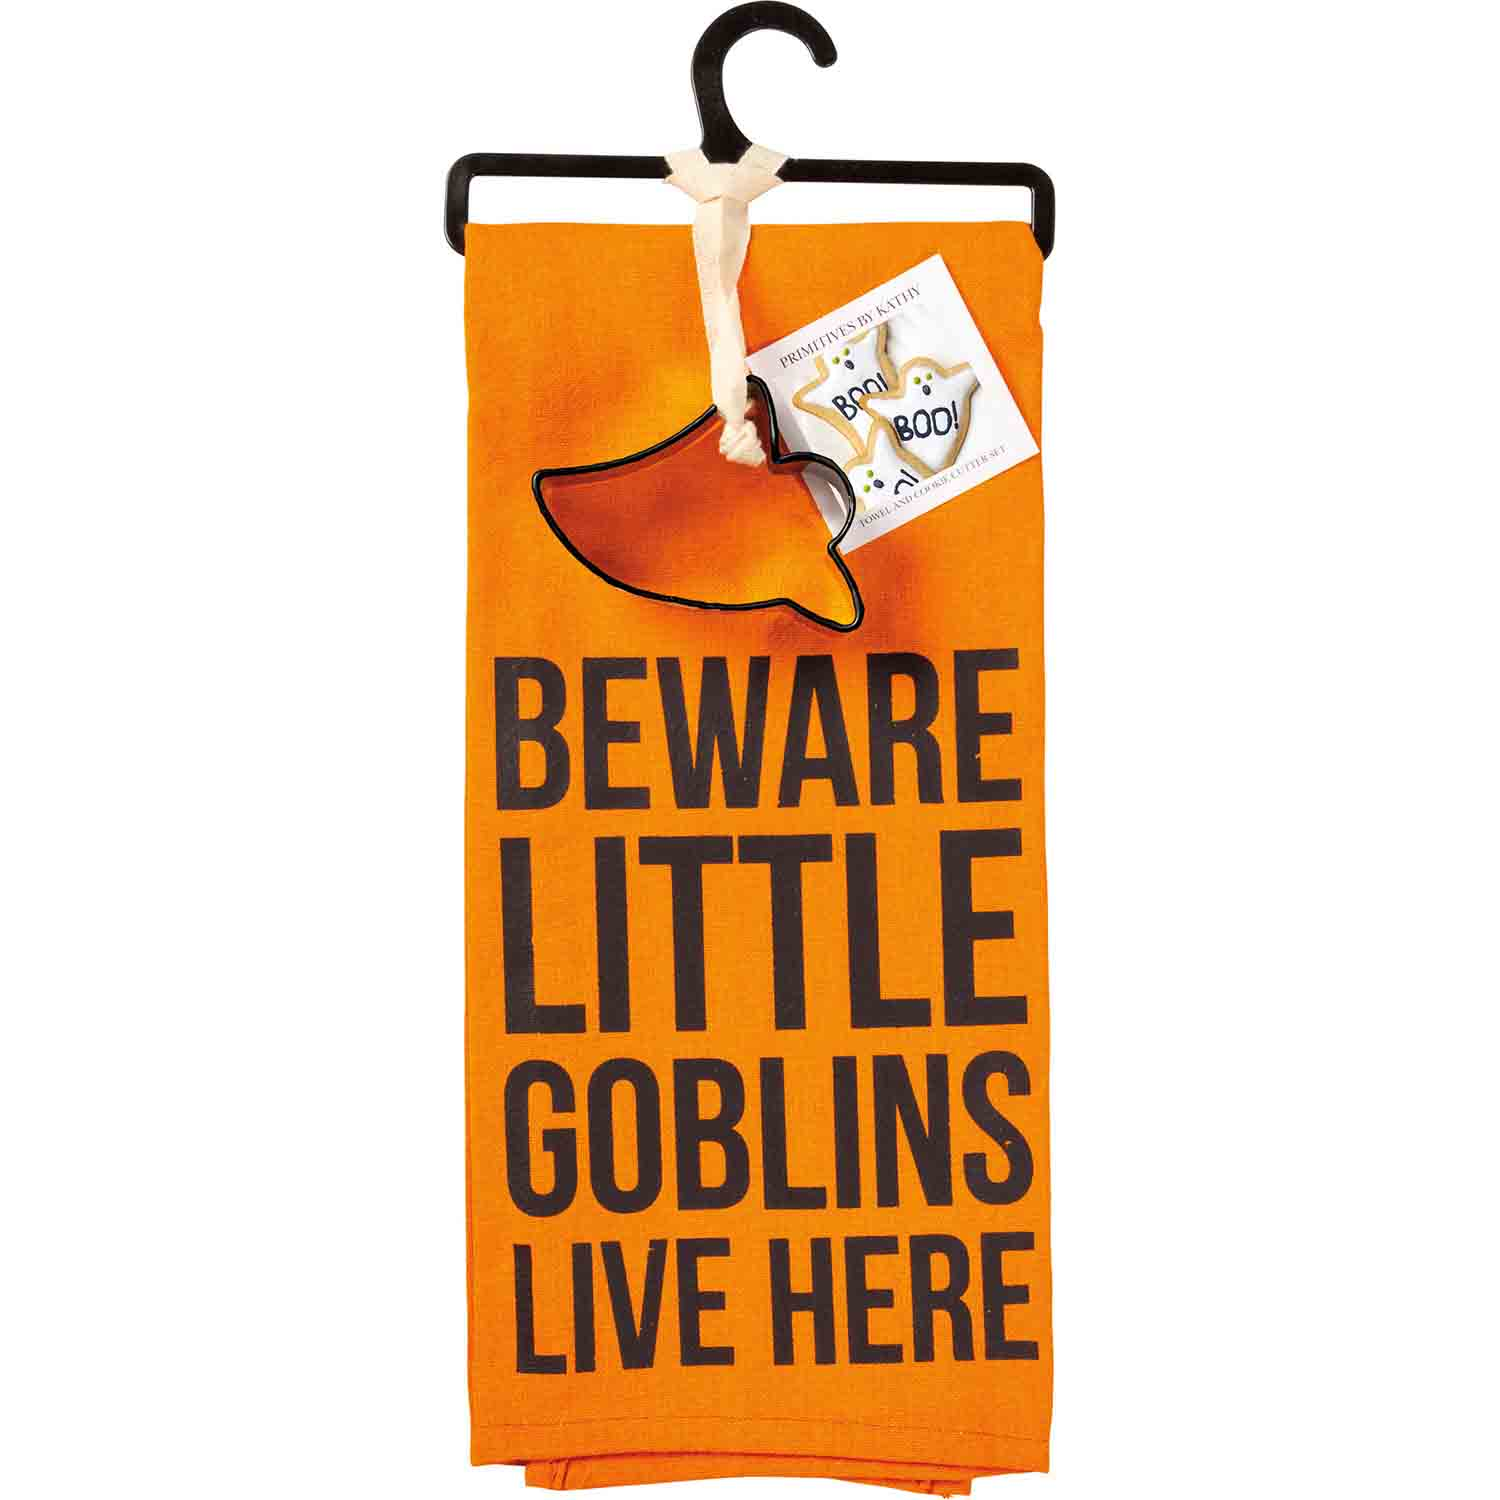 Little Goblins Live Here Towel & Cutter Set